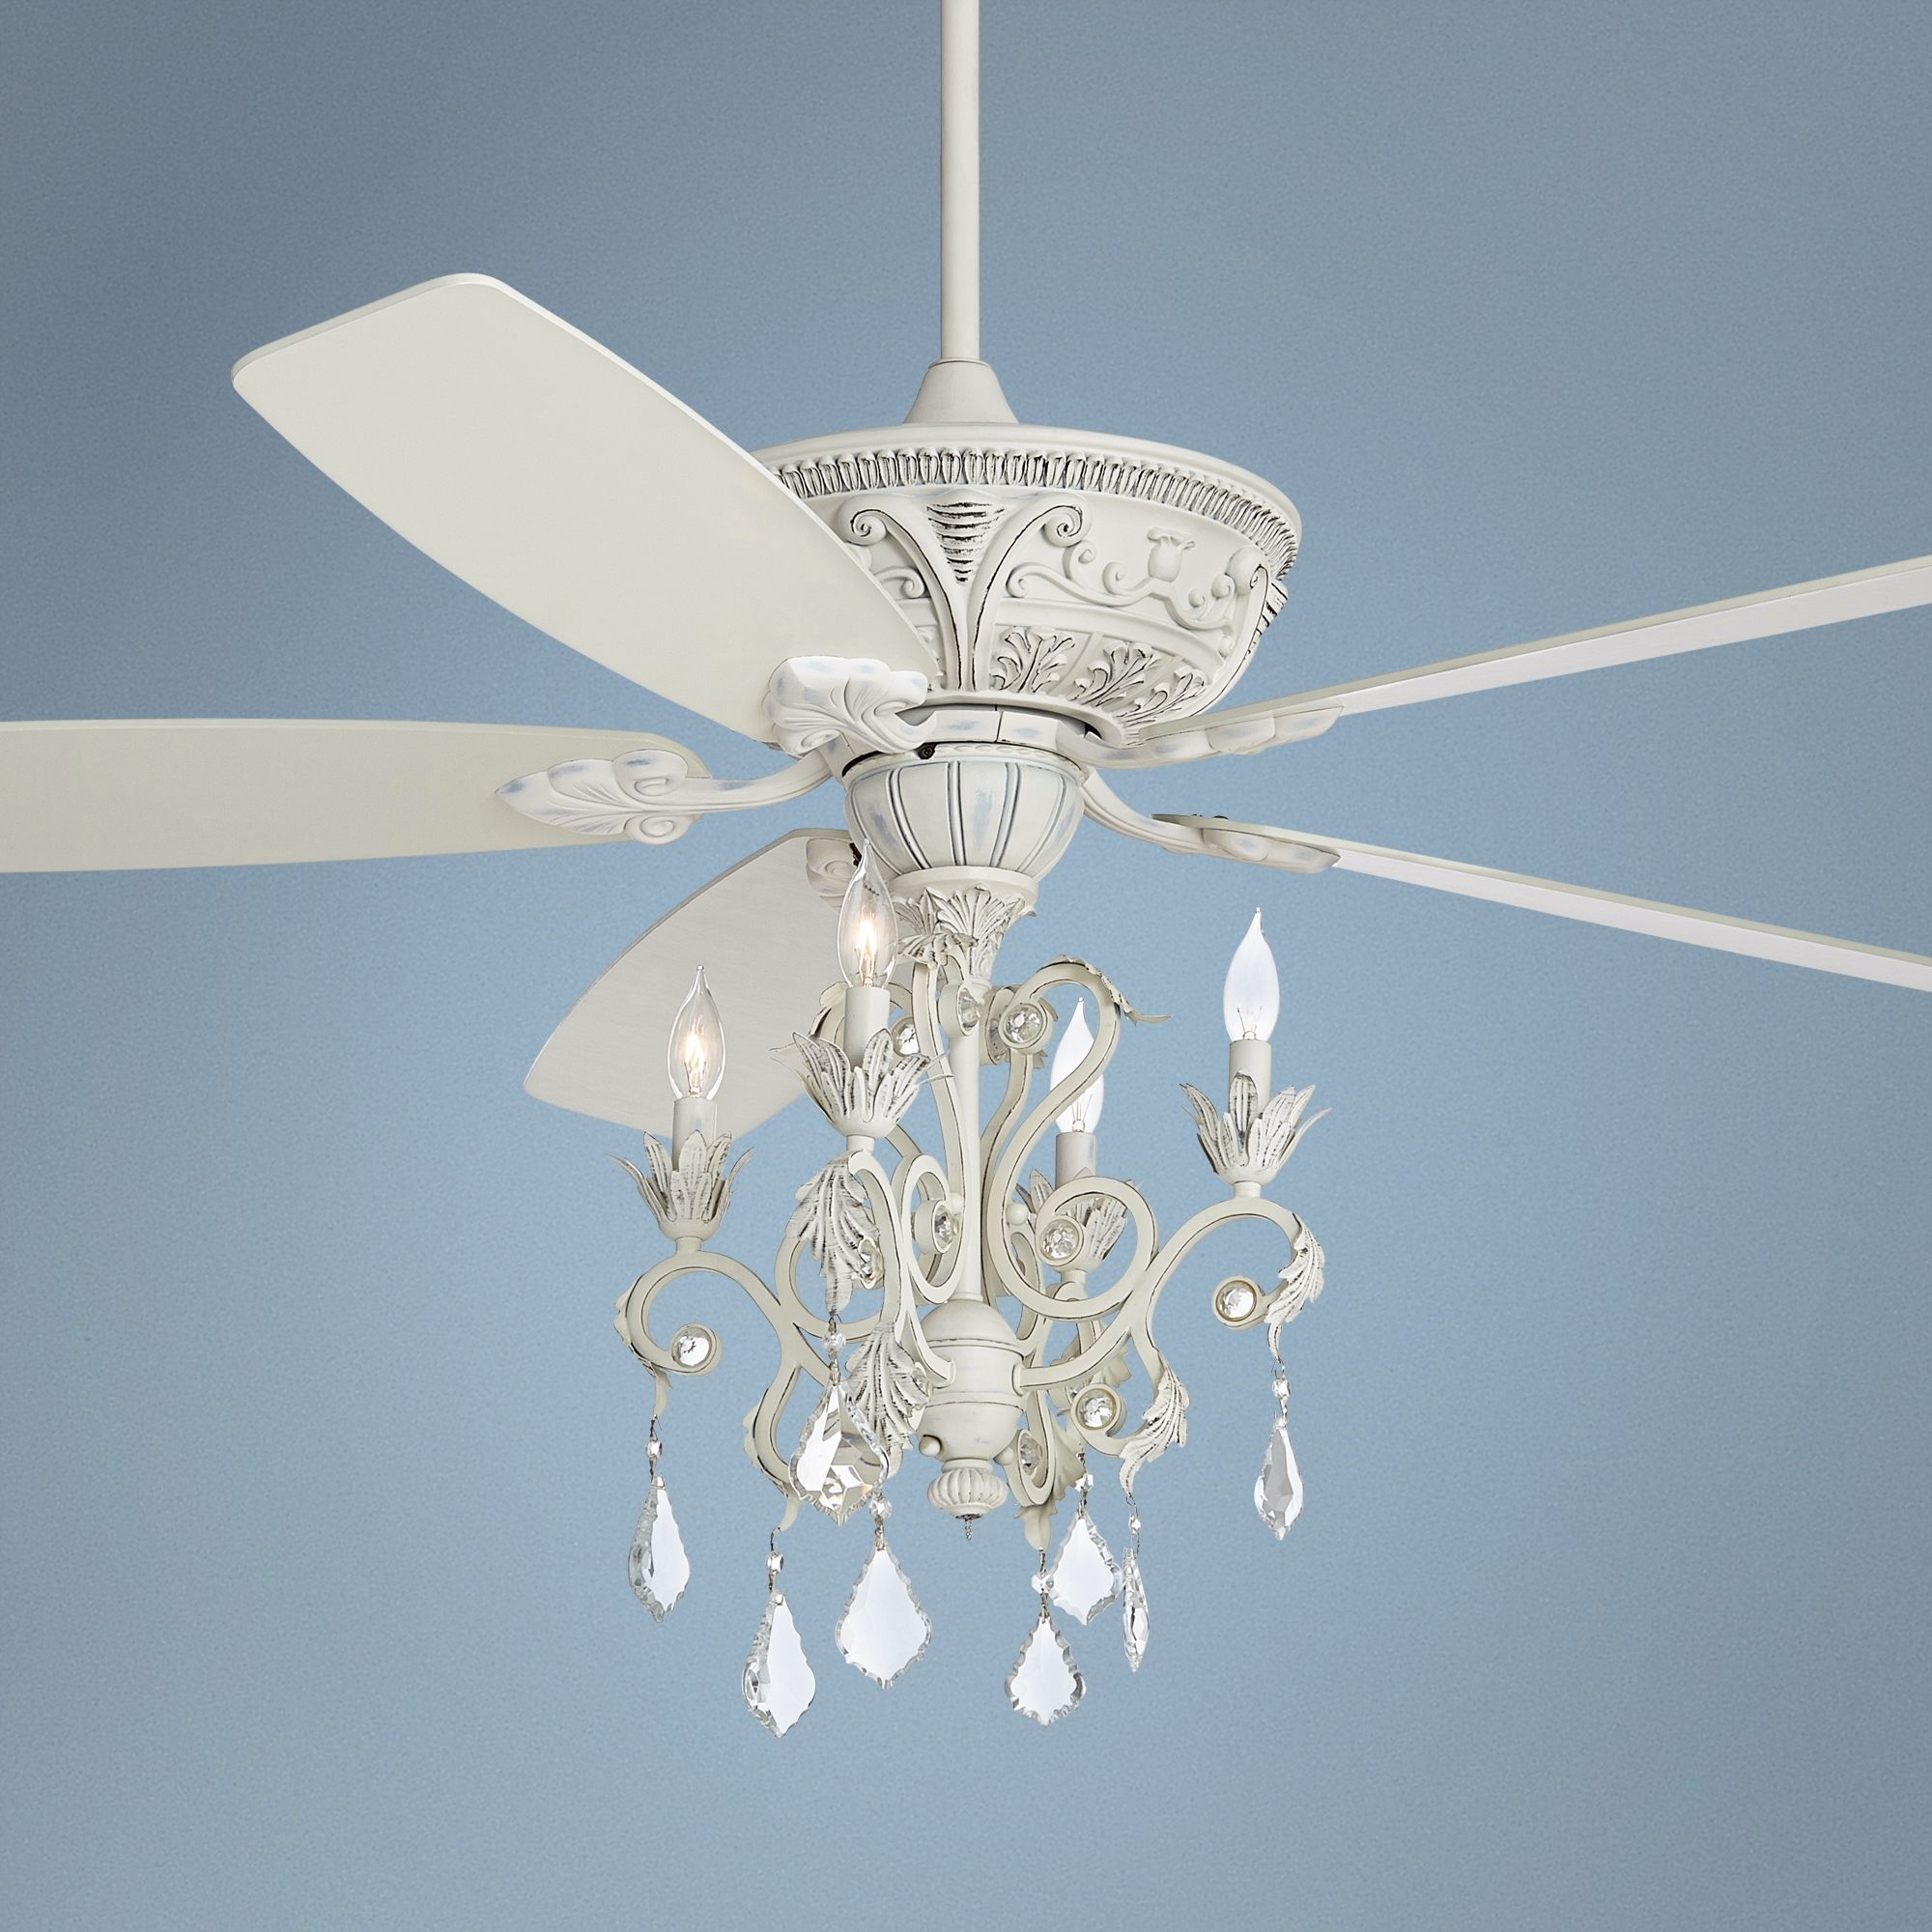 2018 Ideas: Customize Your Ceiling Fan With Hunter Fan Light Kit Lowes Throughout Outdoor Ceiling Fans With Mason Jar Lights (View 1 of 20)